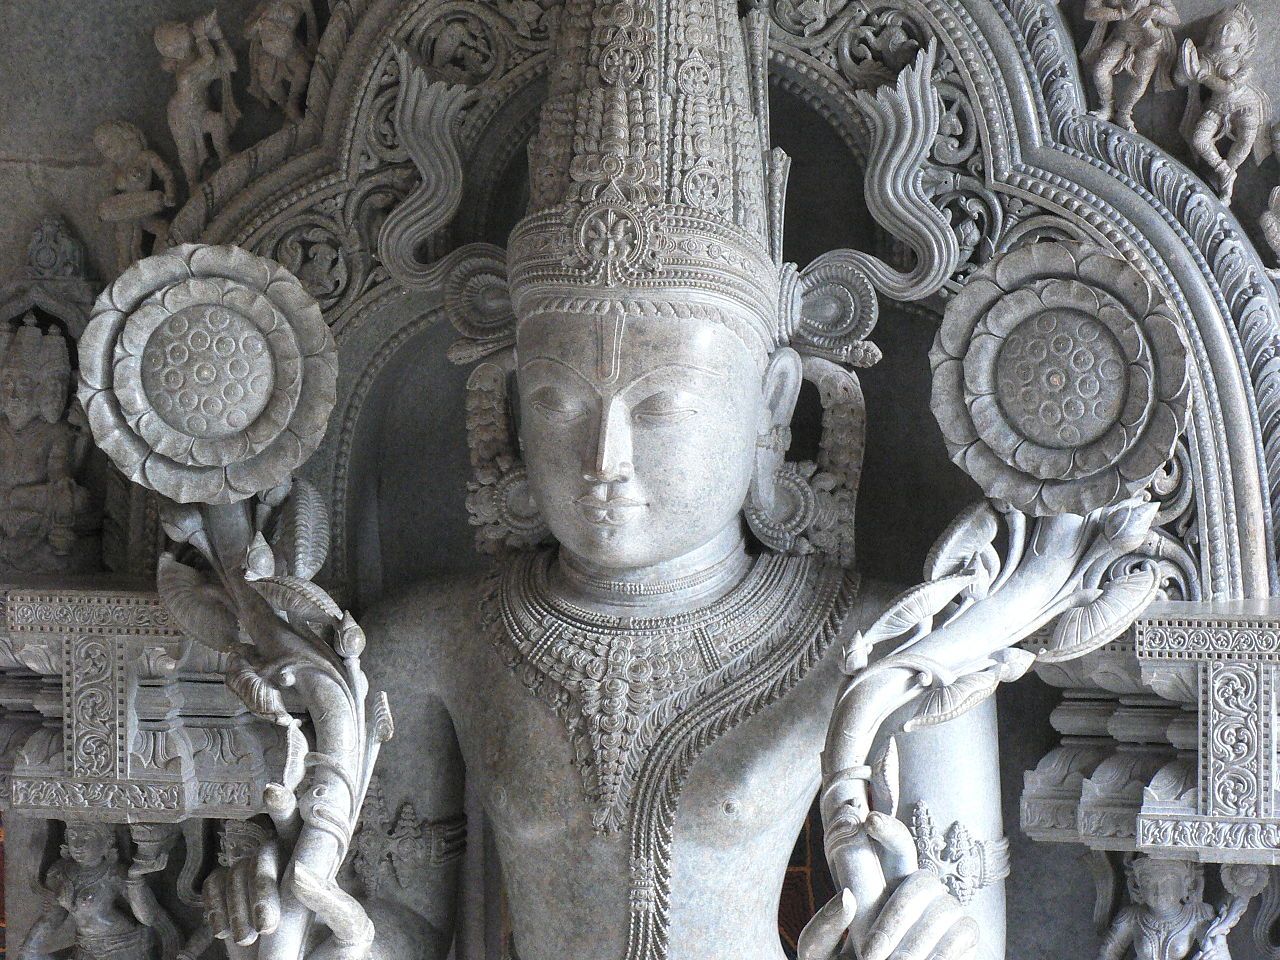 The solar deity Surya shown here as A wooden statue of Surya in New Delhi, India